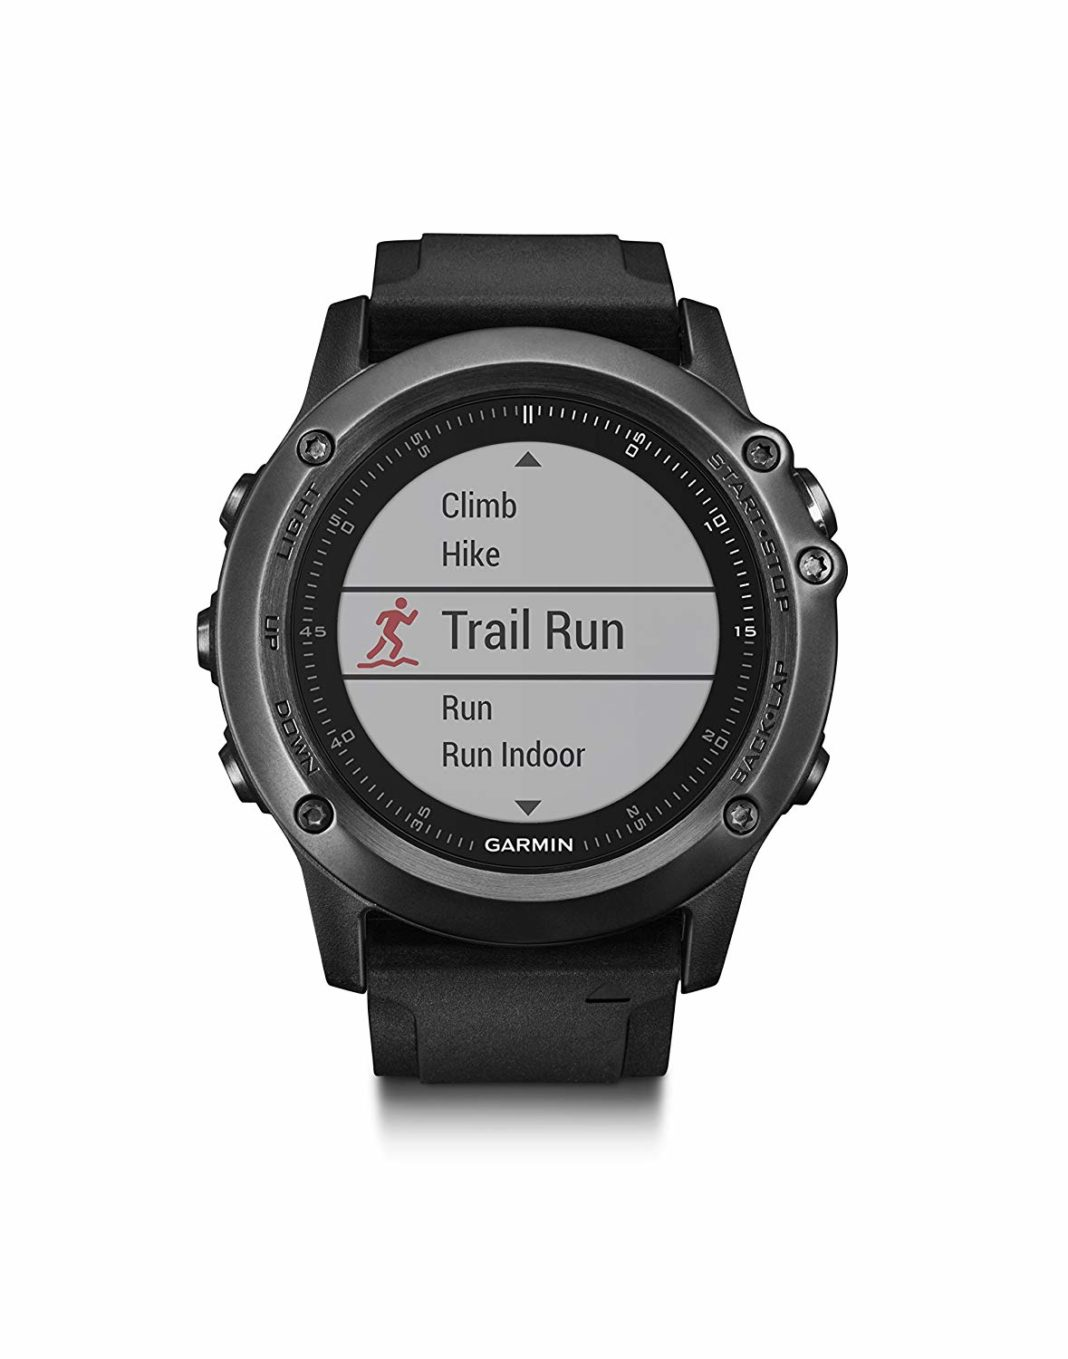 Garmin Fenix 3 HR - Design